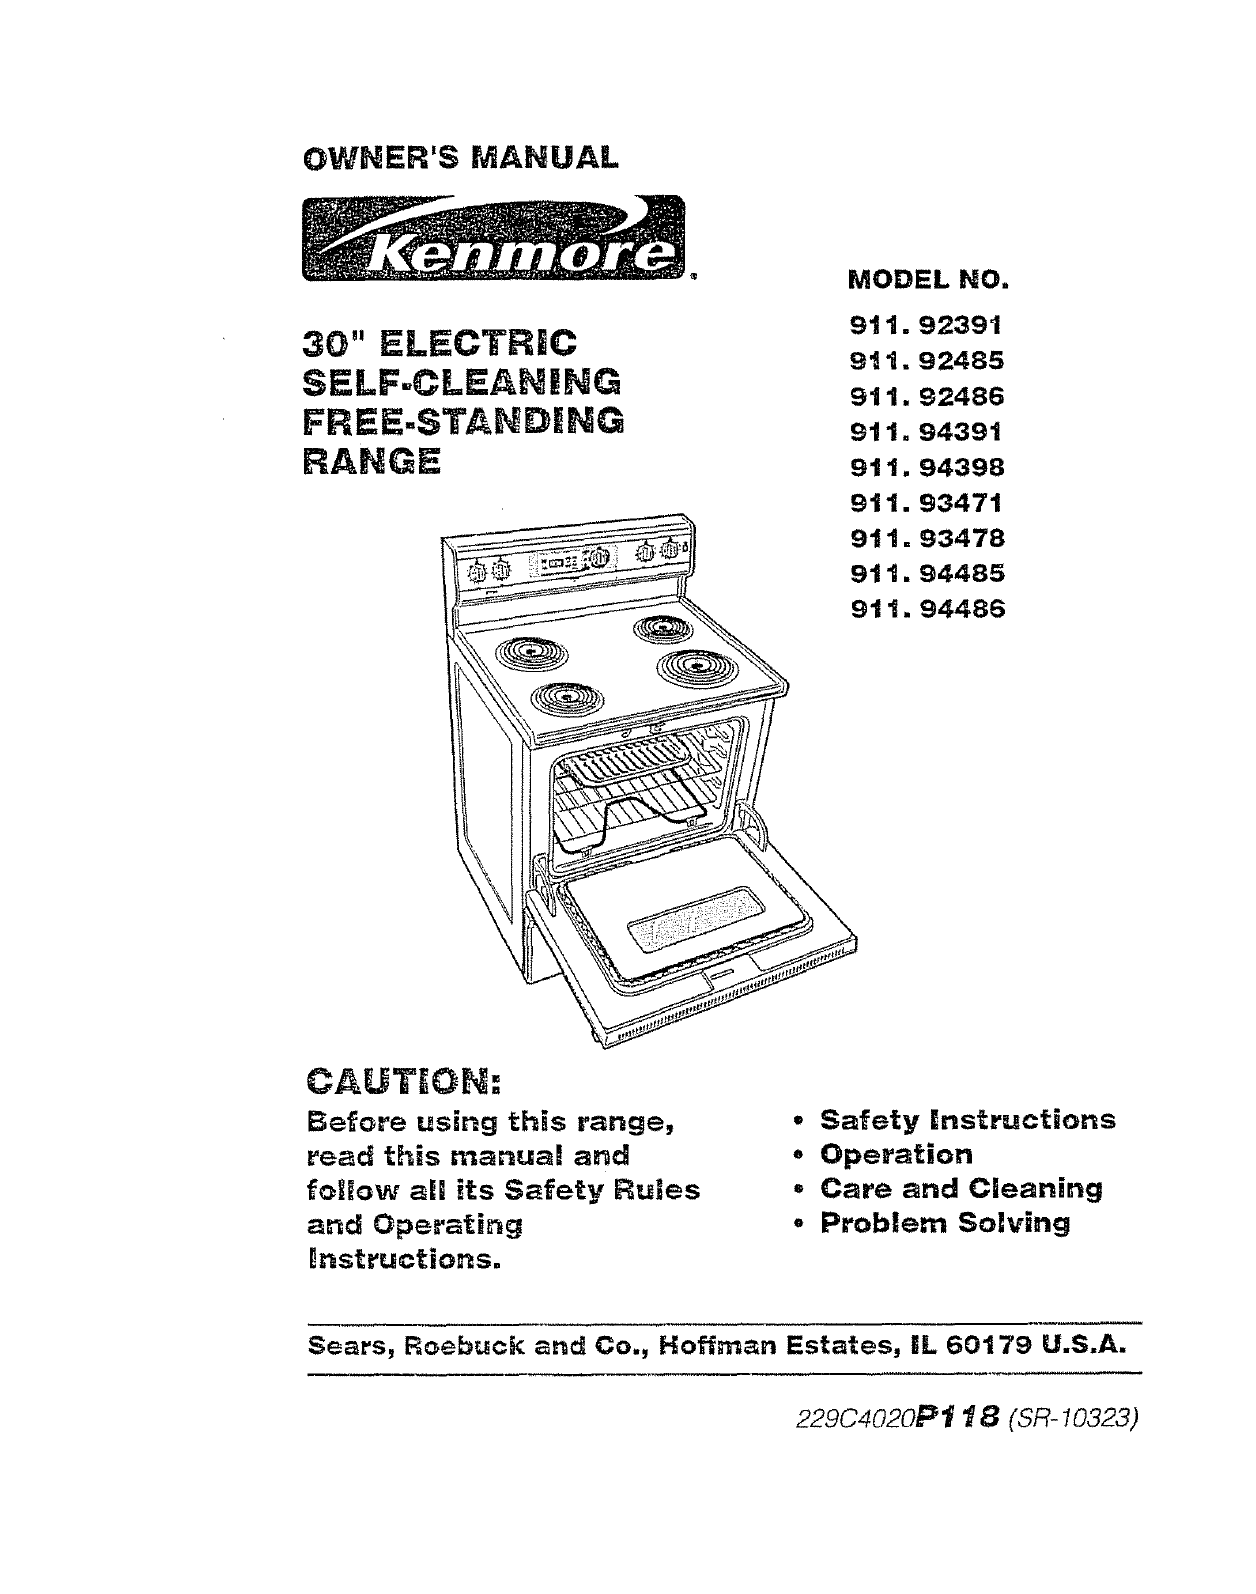 Kenmore Oven 911 92391 User Guide